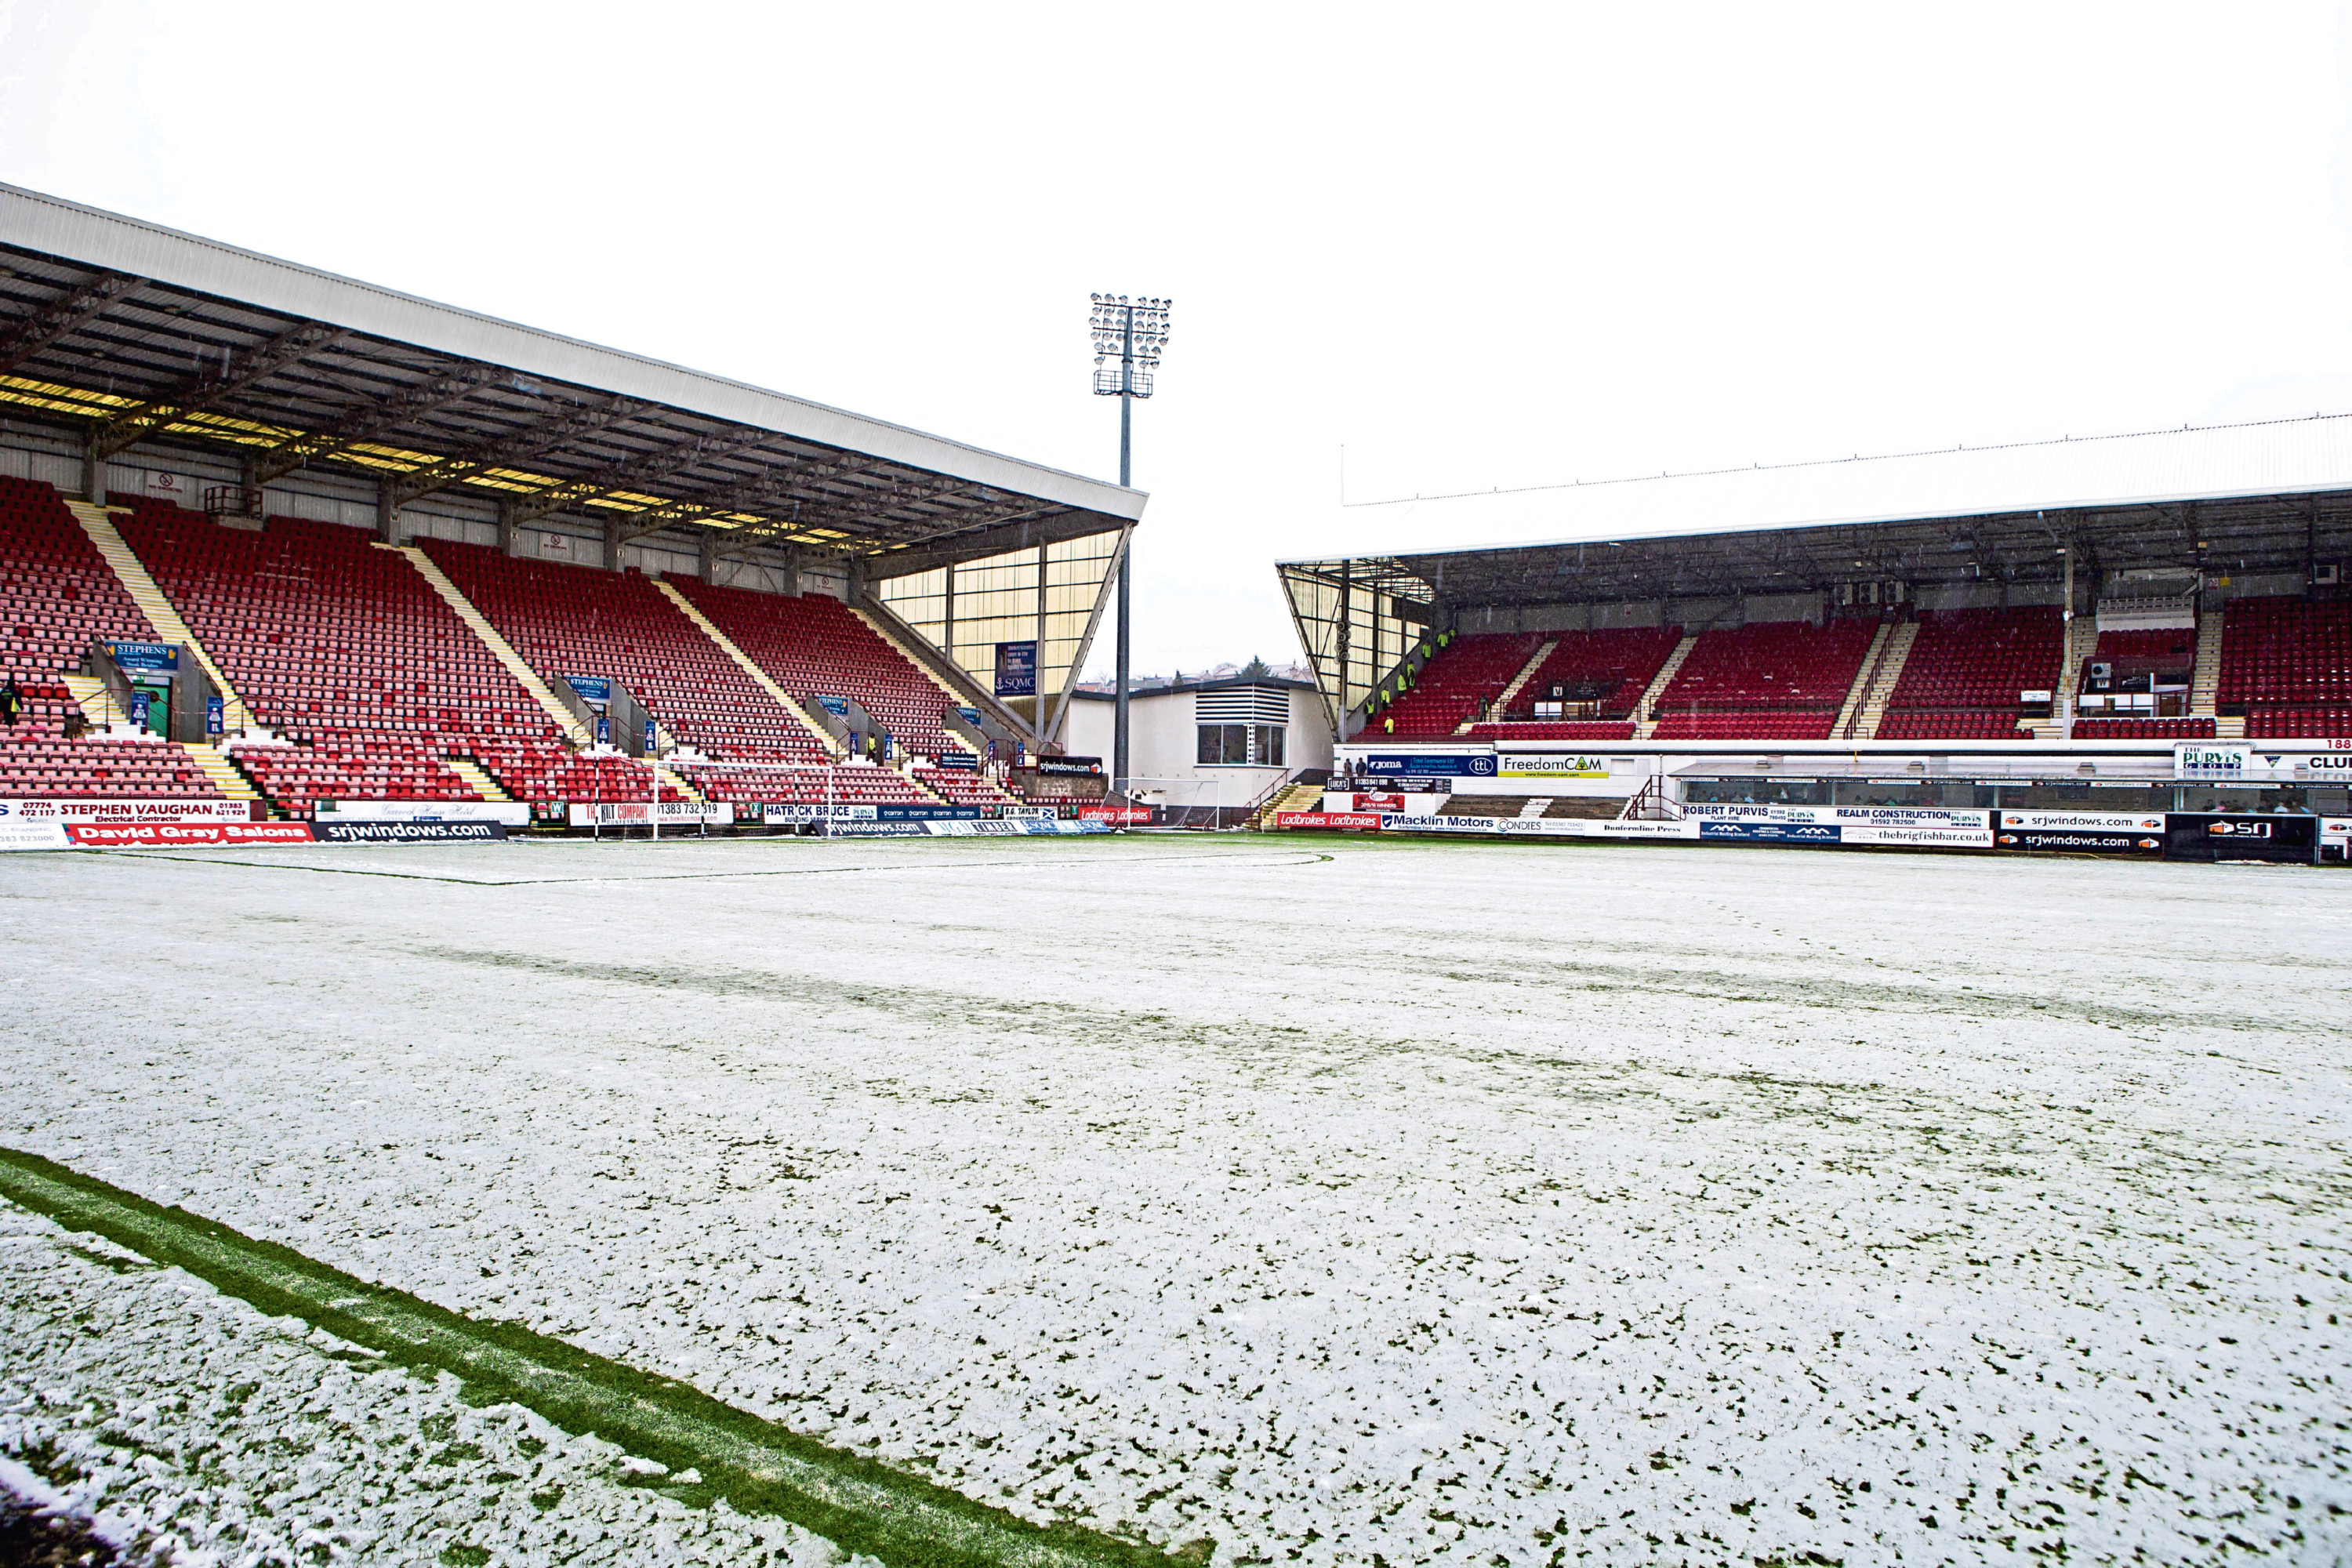 The East End Park pitch after the game was cancelled due to adverse weather.